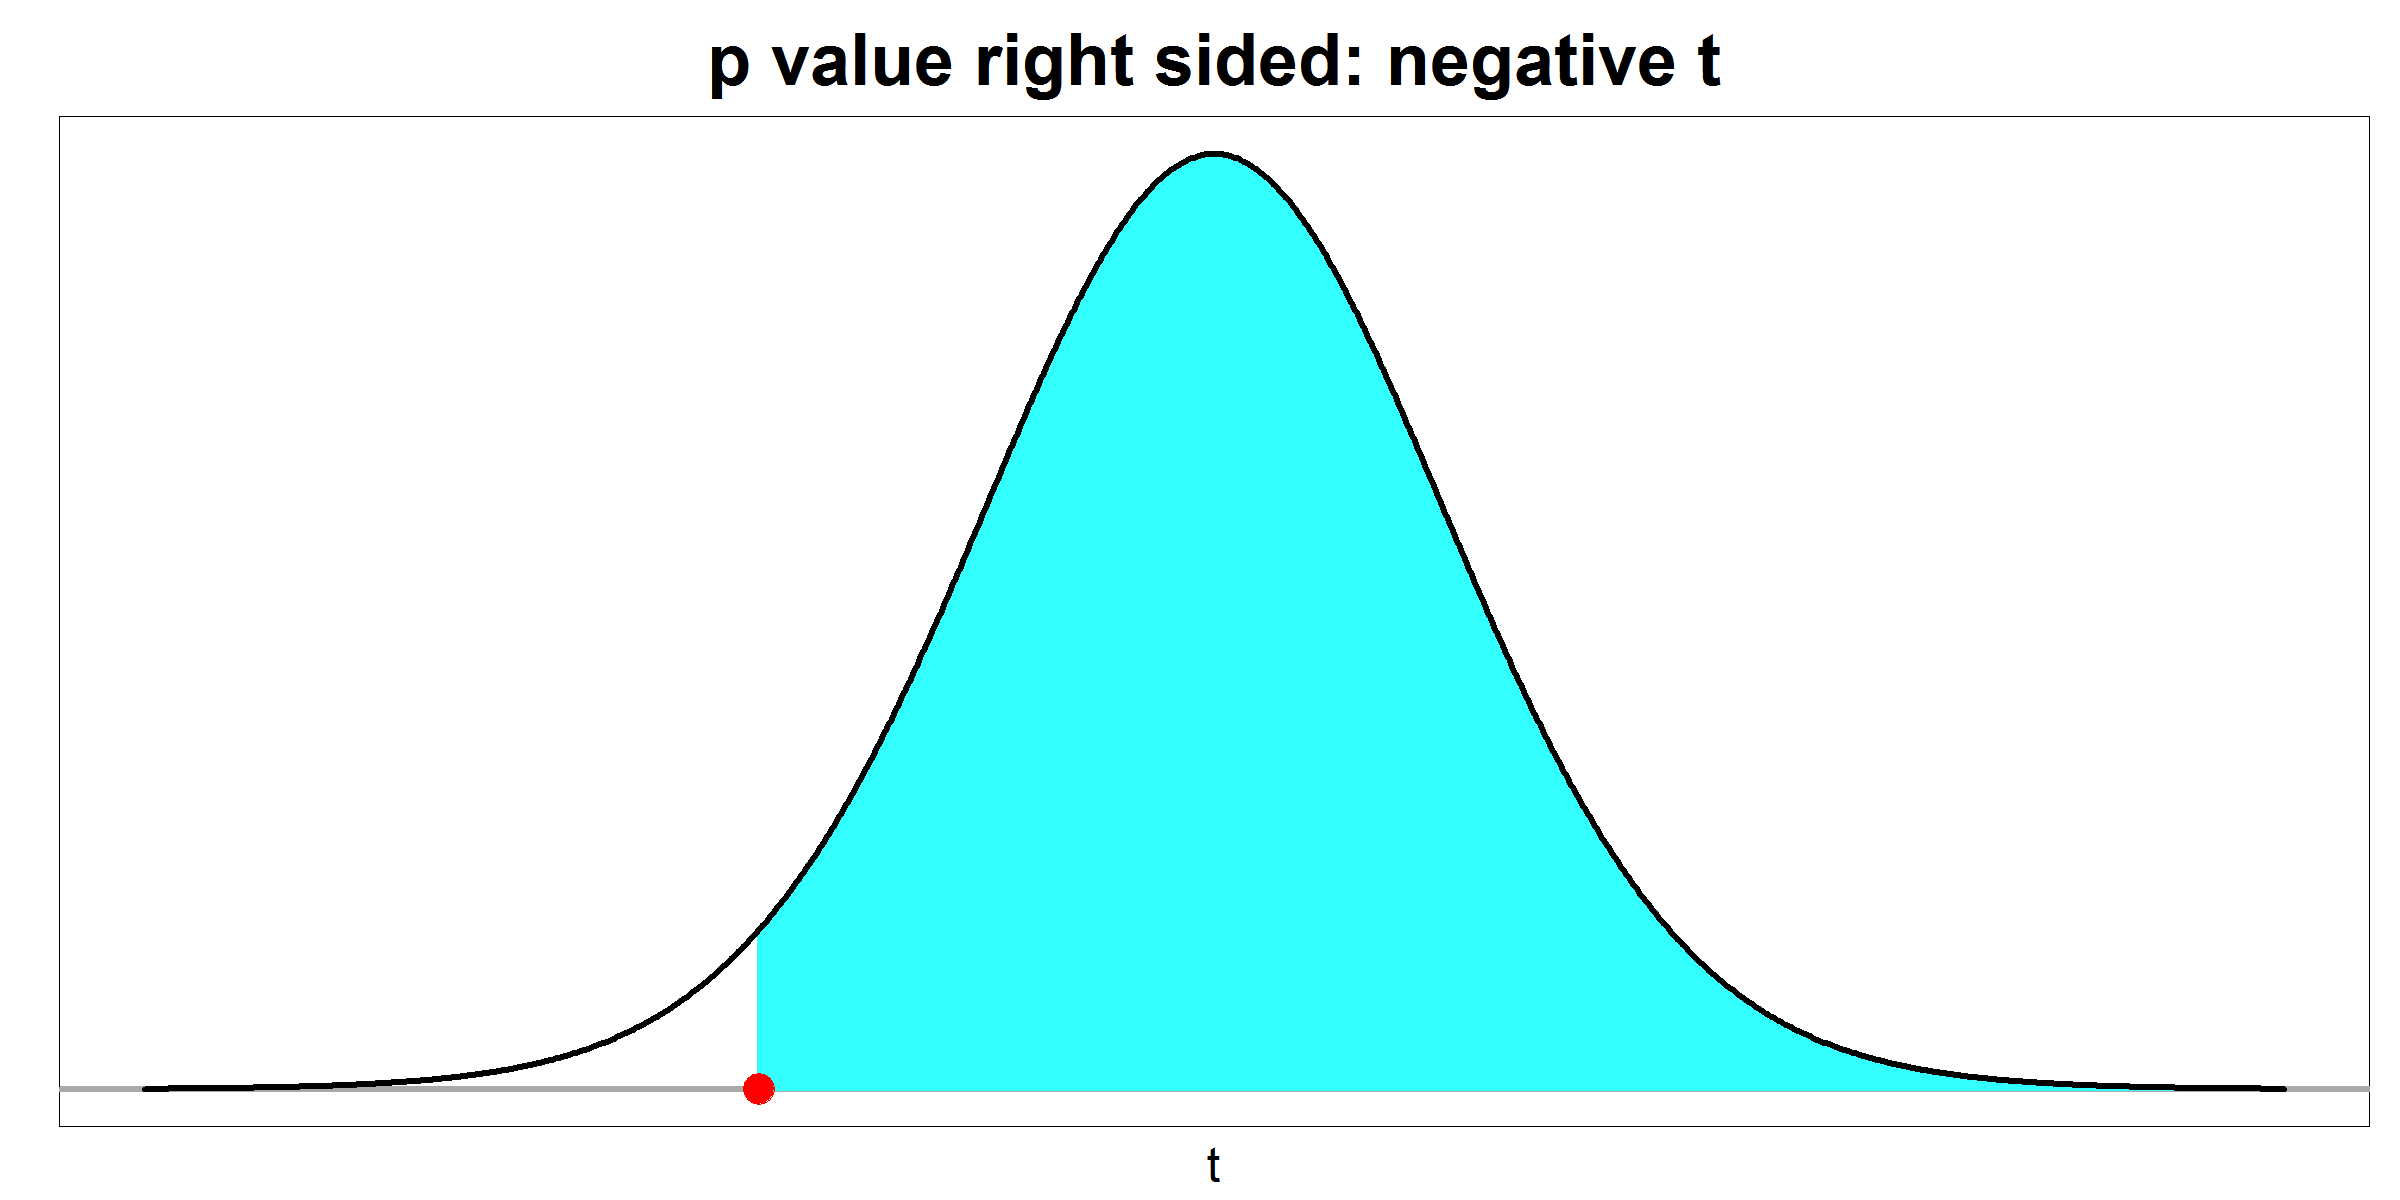 p value - right sided - negative t